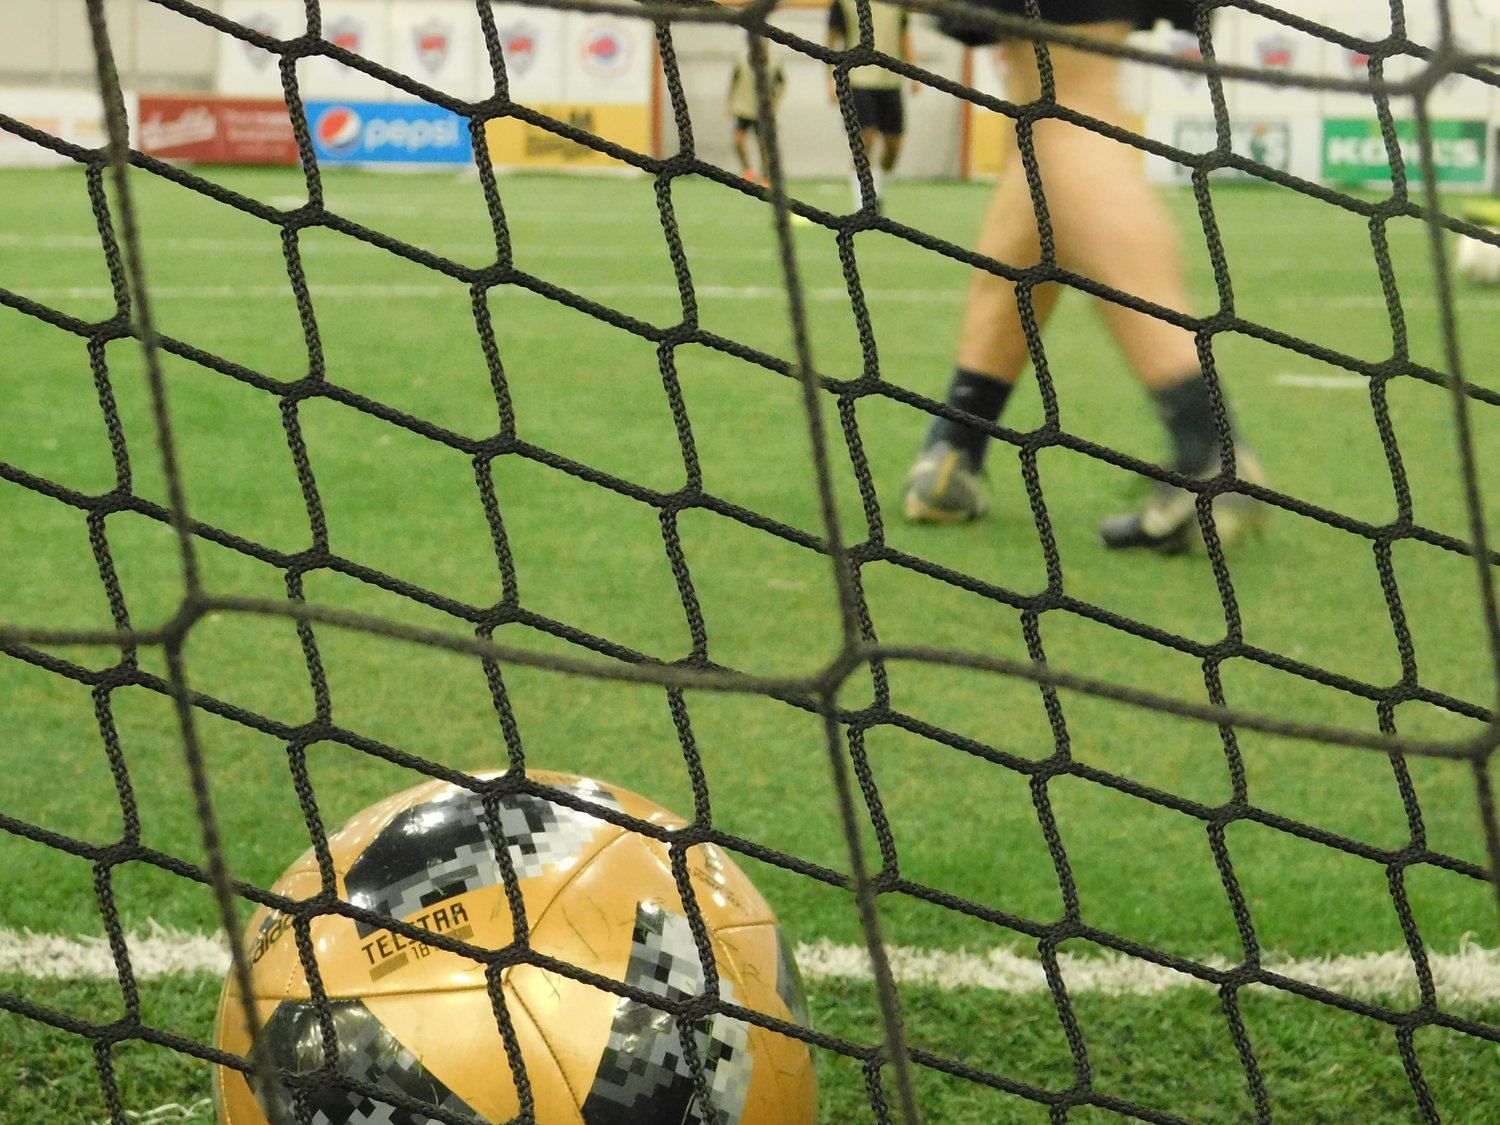 The Brew City Legends FC first home game is Dec. 15 against the Chicago Mustangs. (Picture by Nyesha Stone)